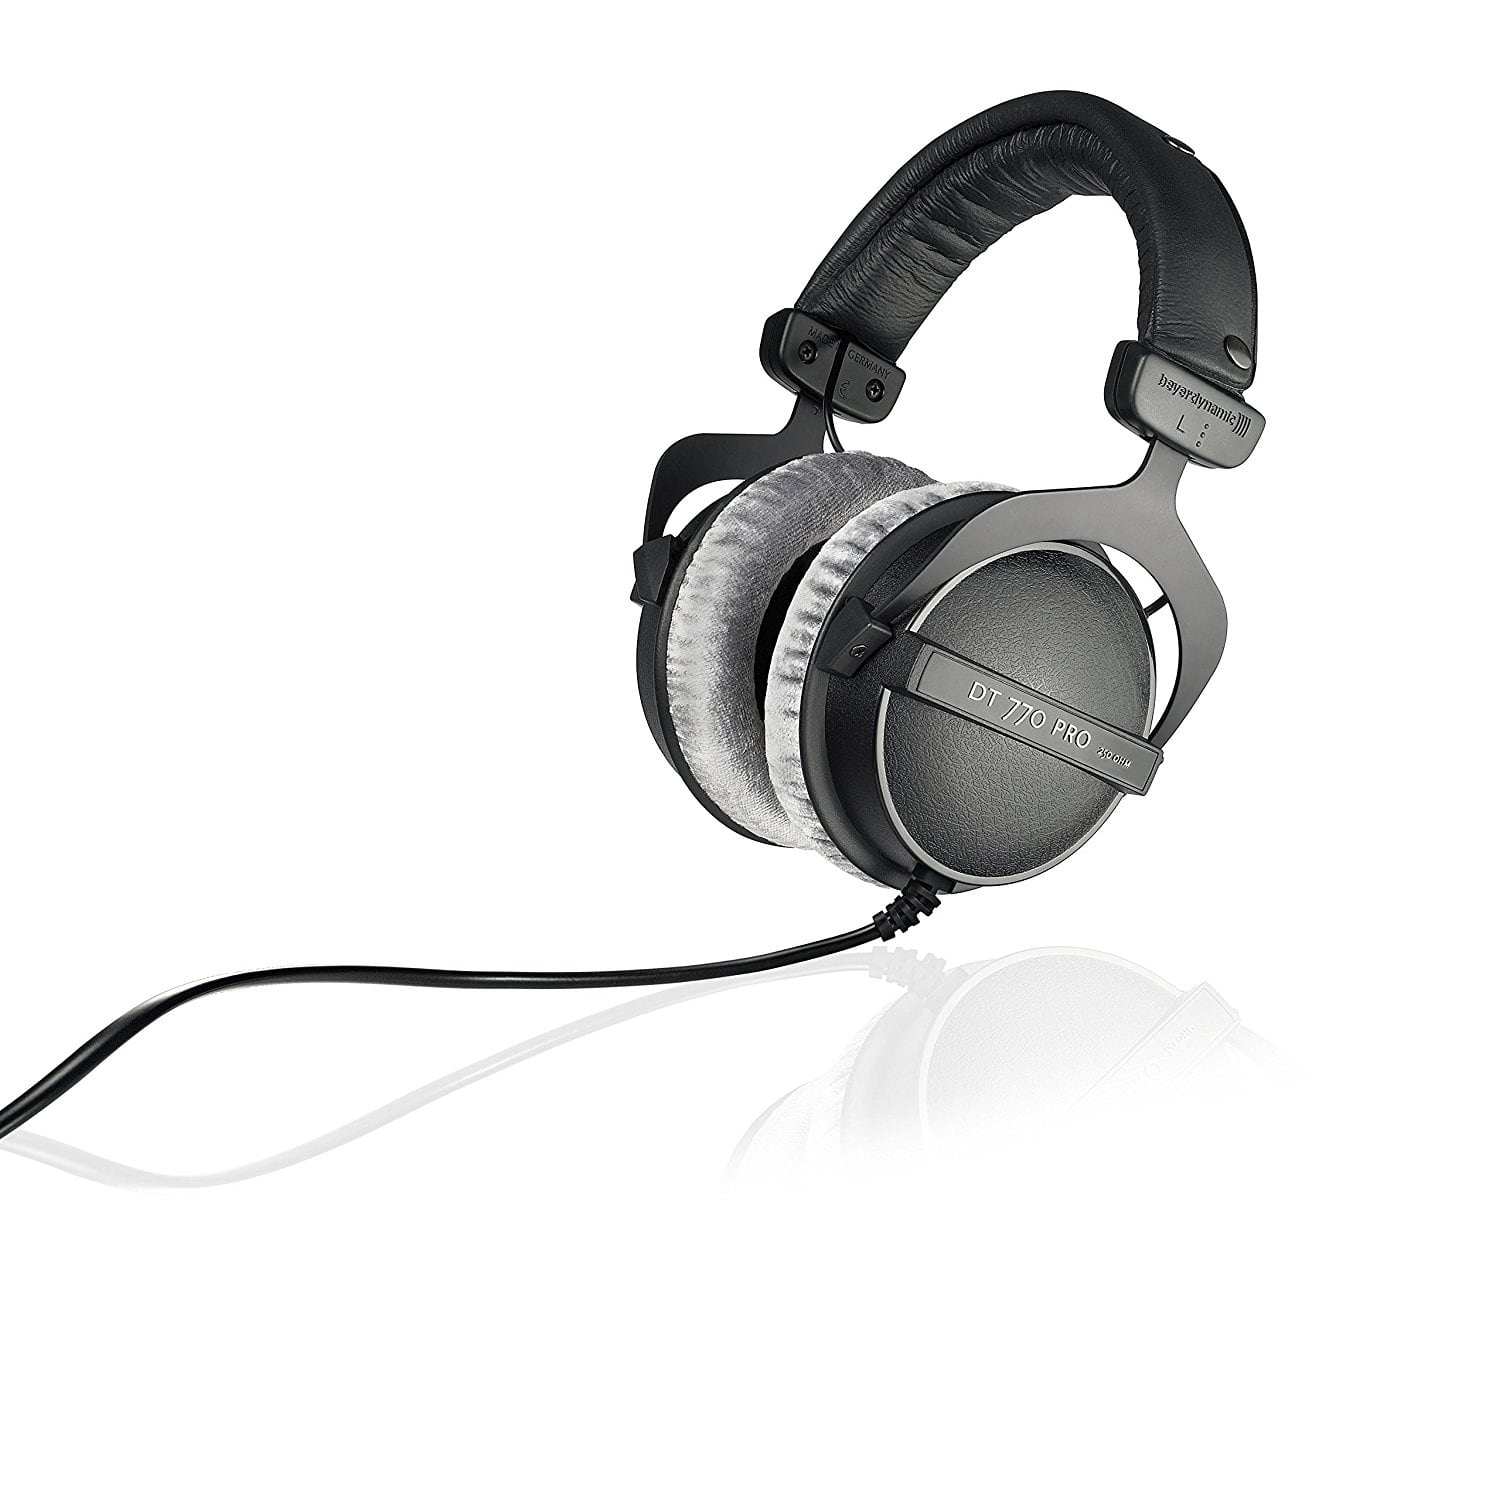 Beyerdynamic DT 770 PRO, 250 ohms (Gray, Headphones) + Free Shipping $130 @ Amazon